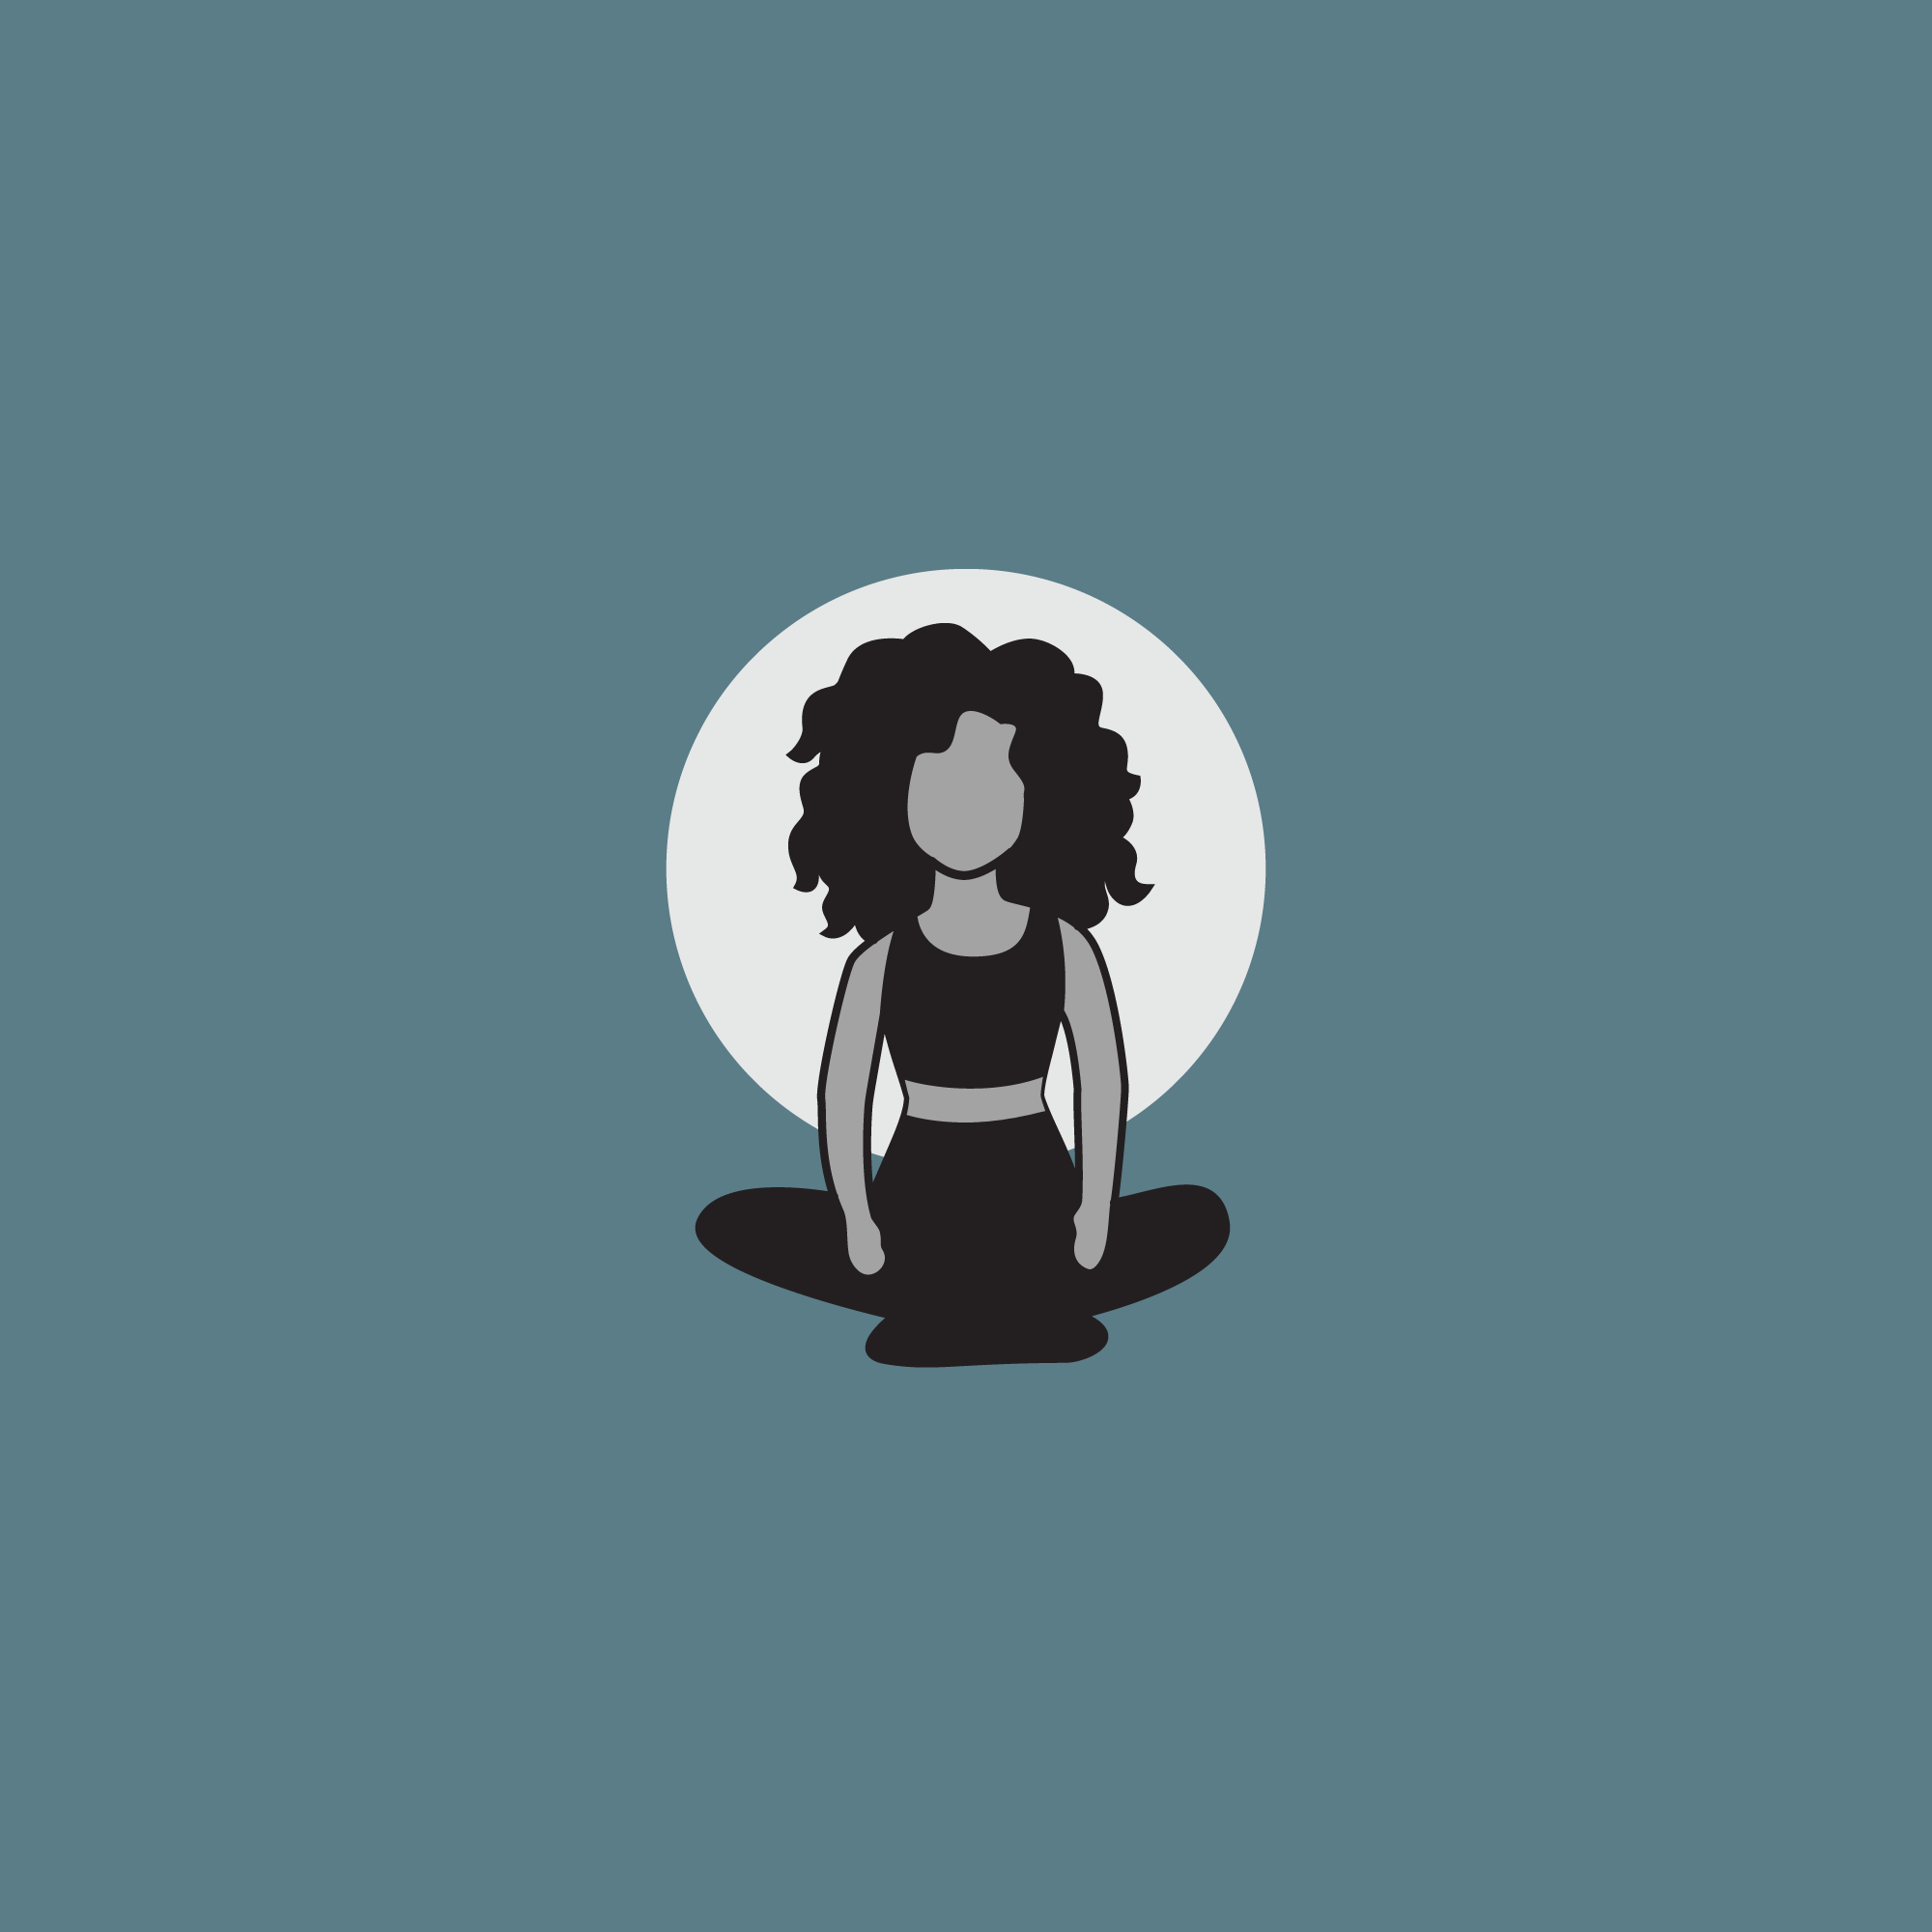 Custom icon design of a woman with wild, curly hair. She is.